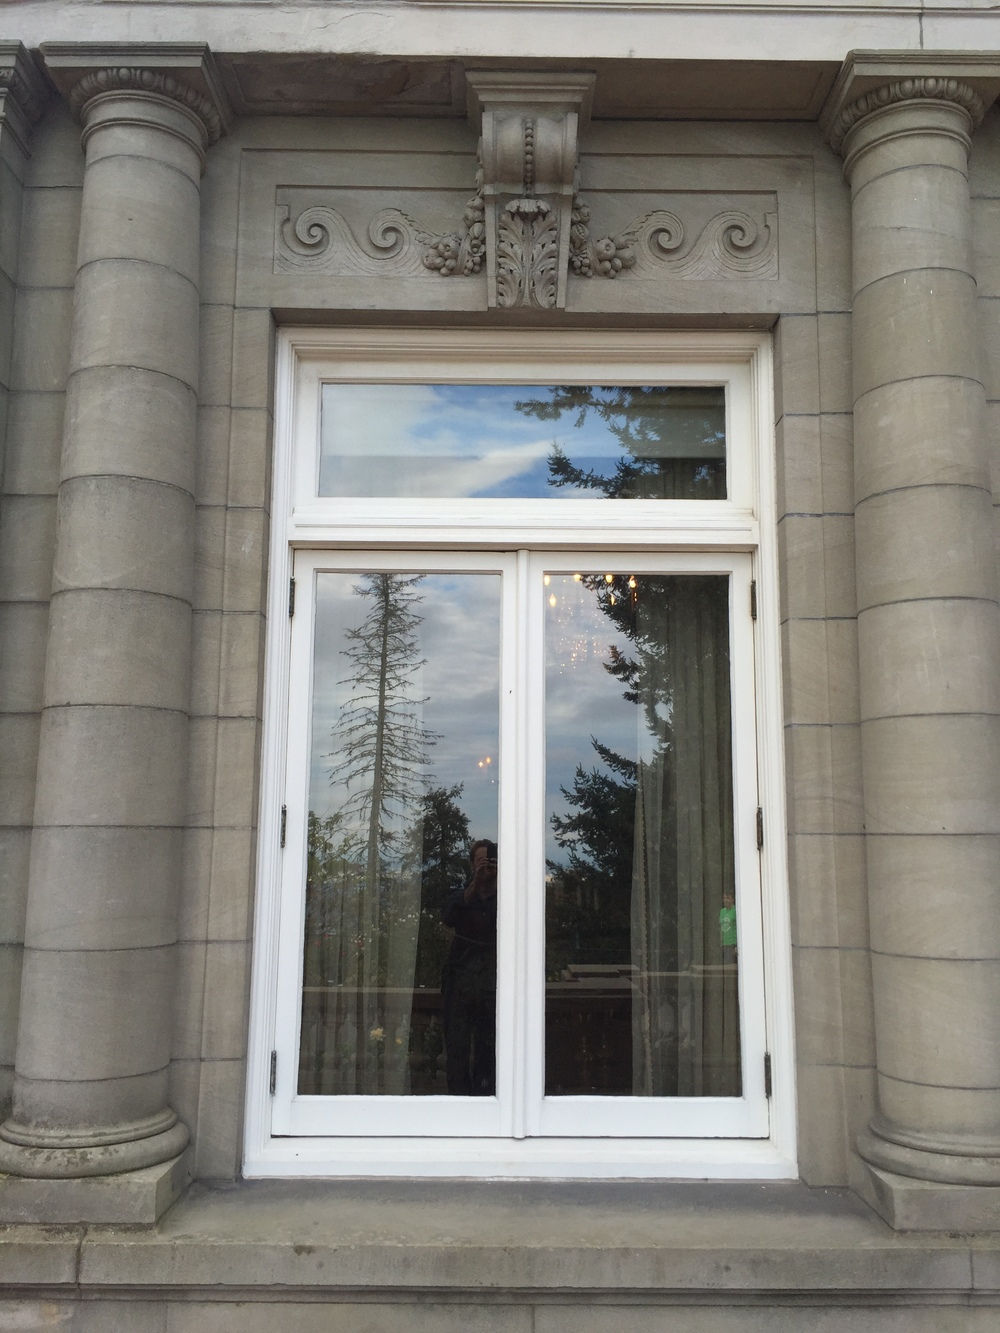 Fig. 4 Pittock Mansion, Front Window Surround with Ionic Motifs, Photo by Author